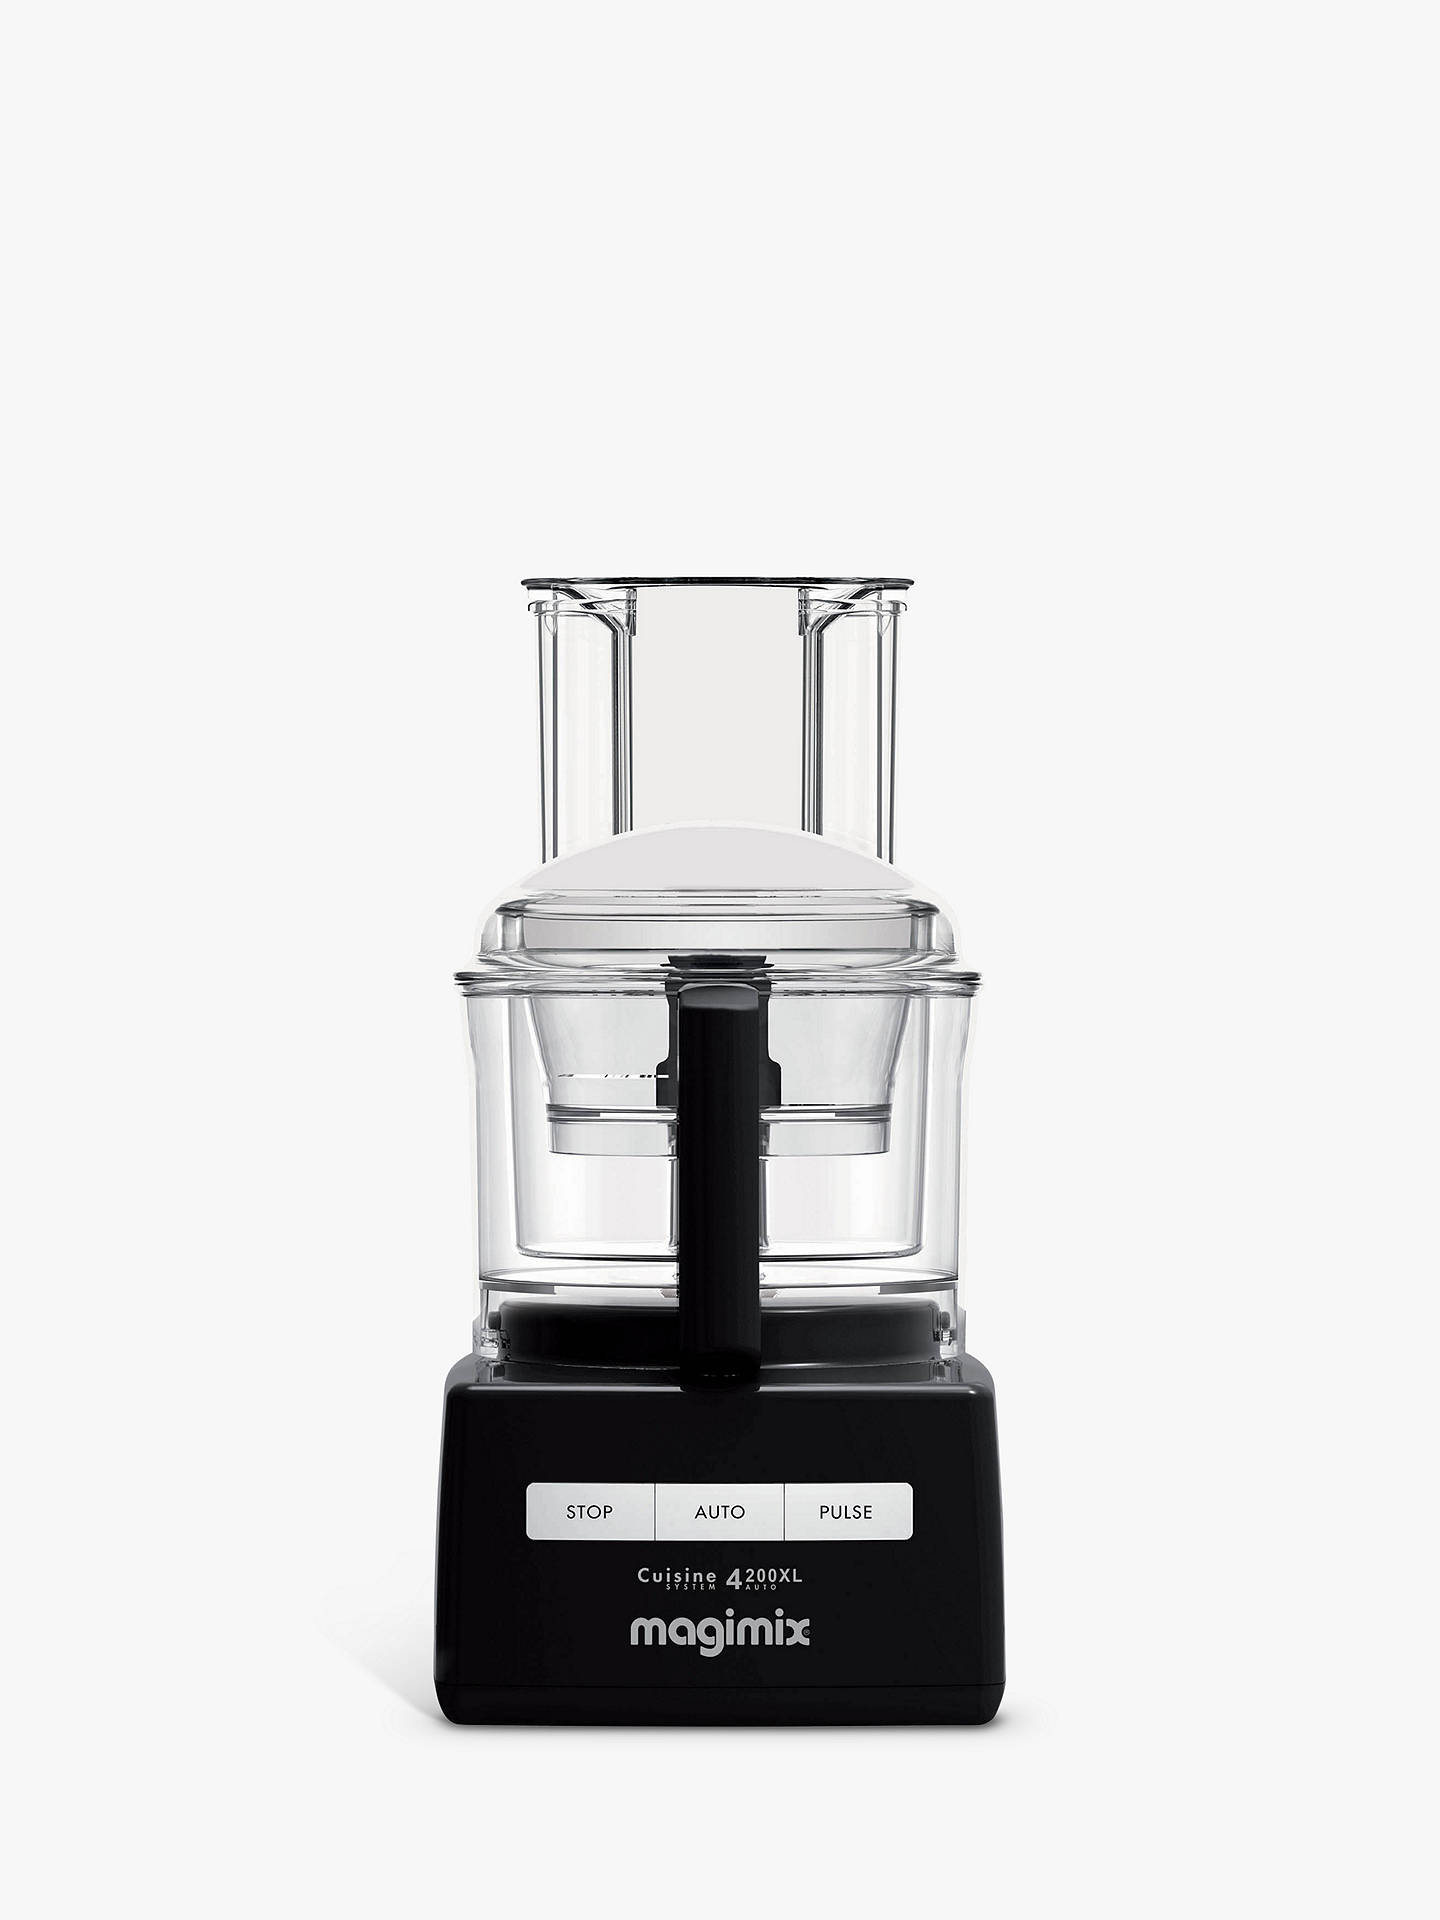 Buy Magimix 4200XL BlenderMix Food Processor, Black Online at johnlewis.com